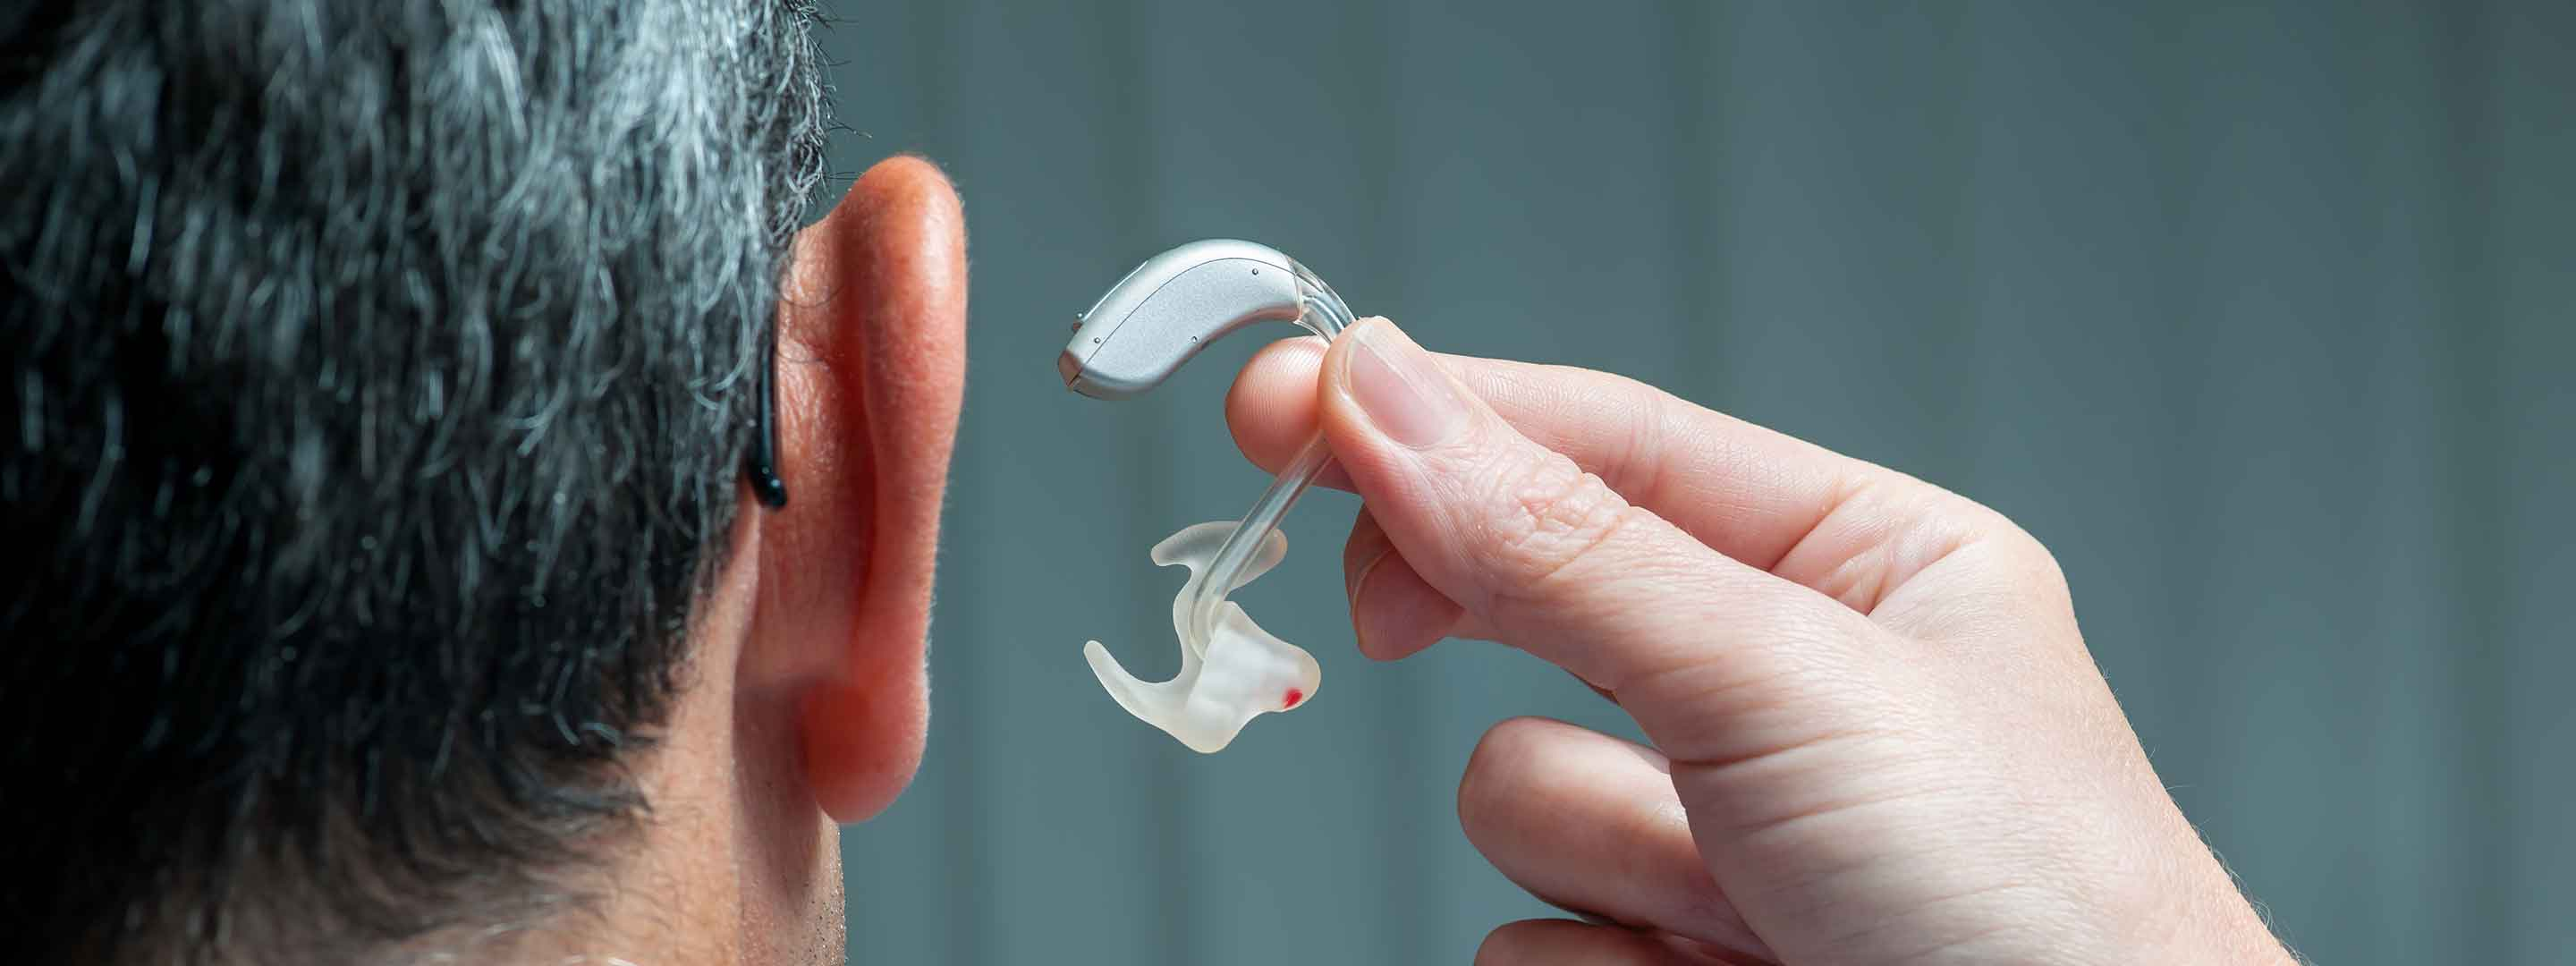 How To Deep Clean Your Hearing Aids